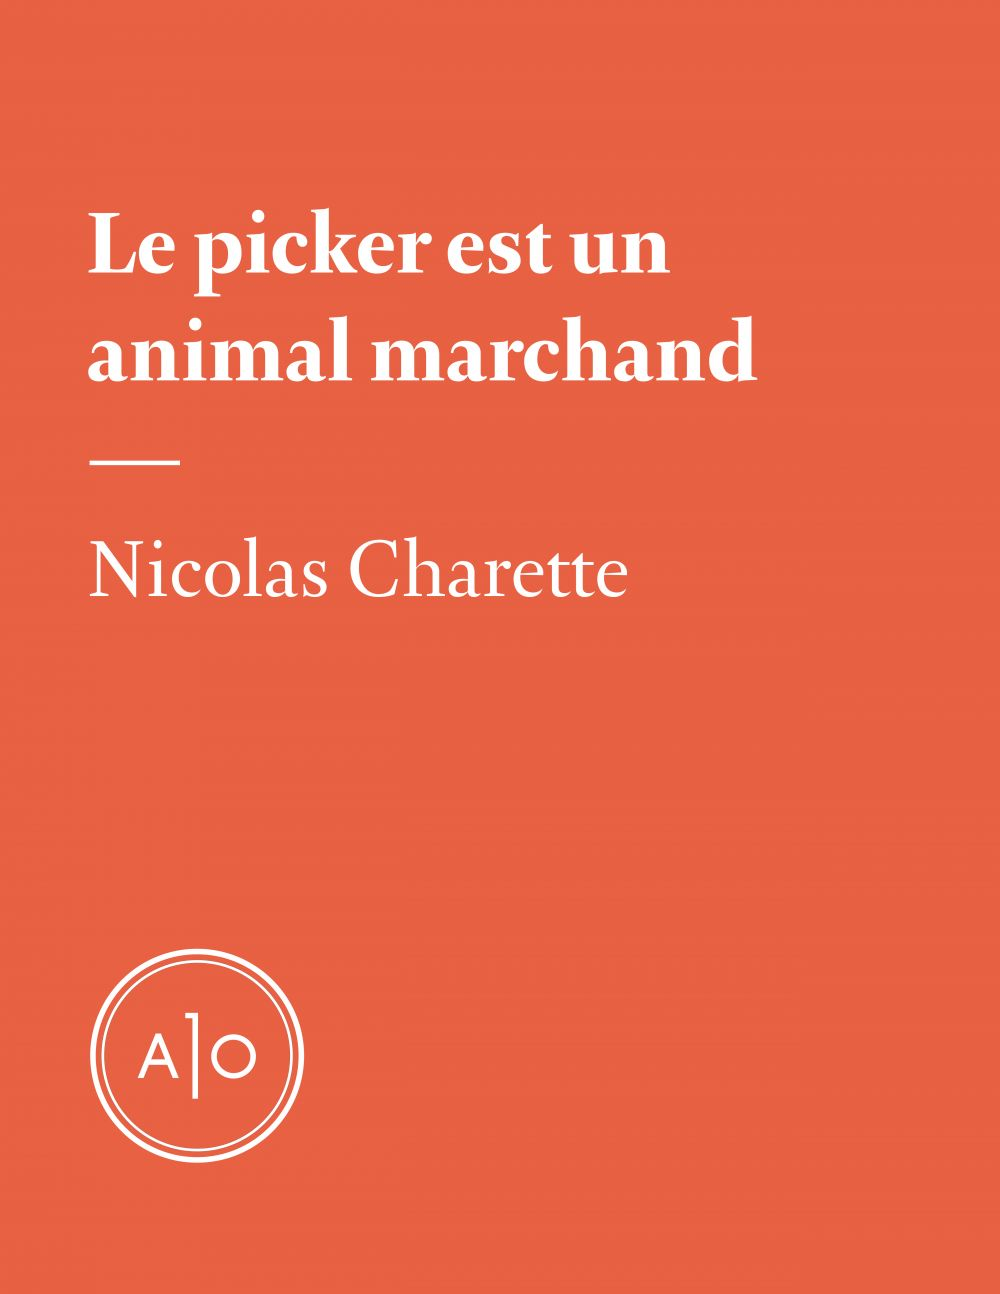 Le picker est un animal marchand